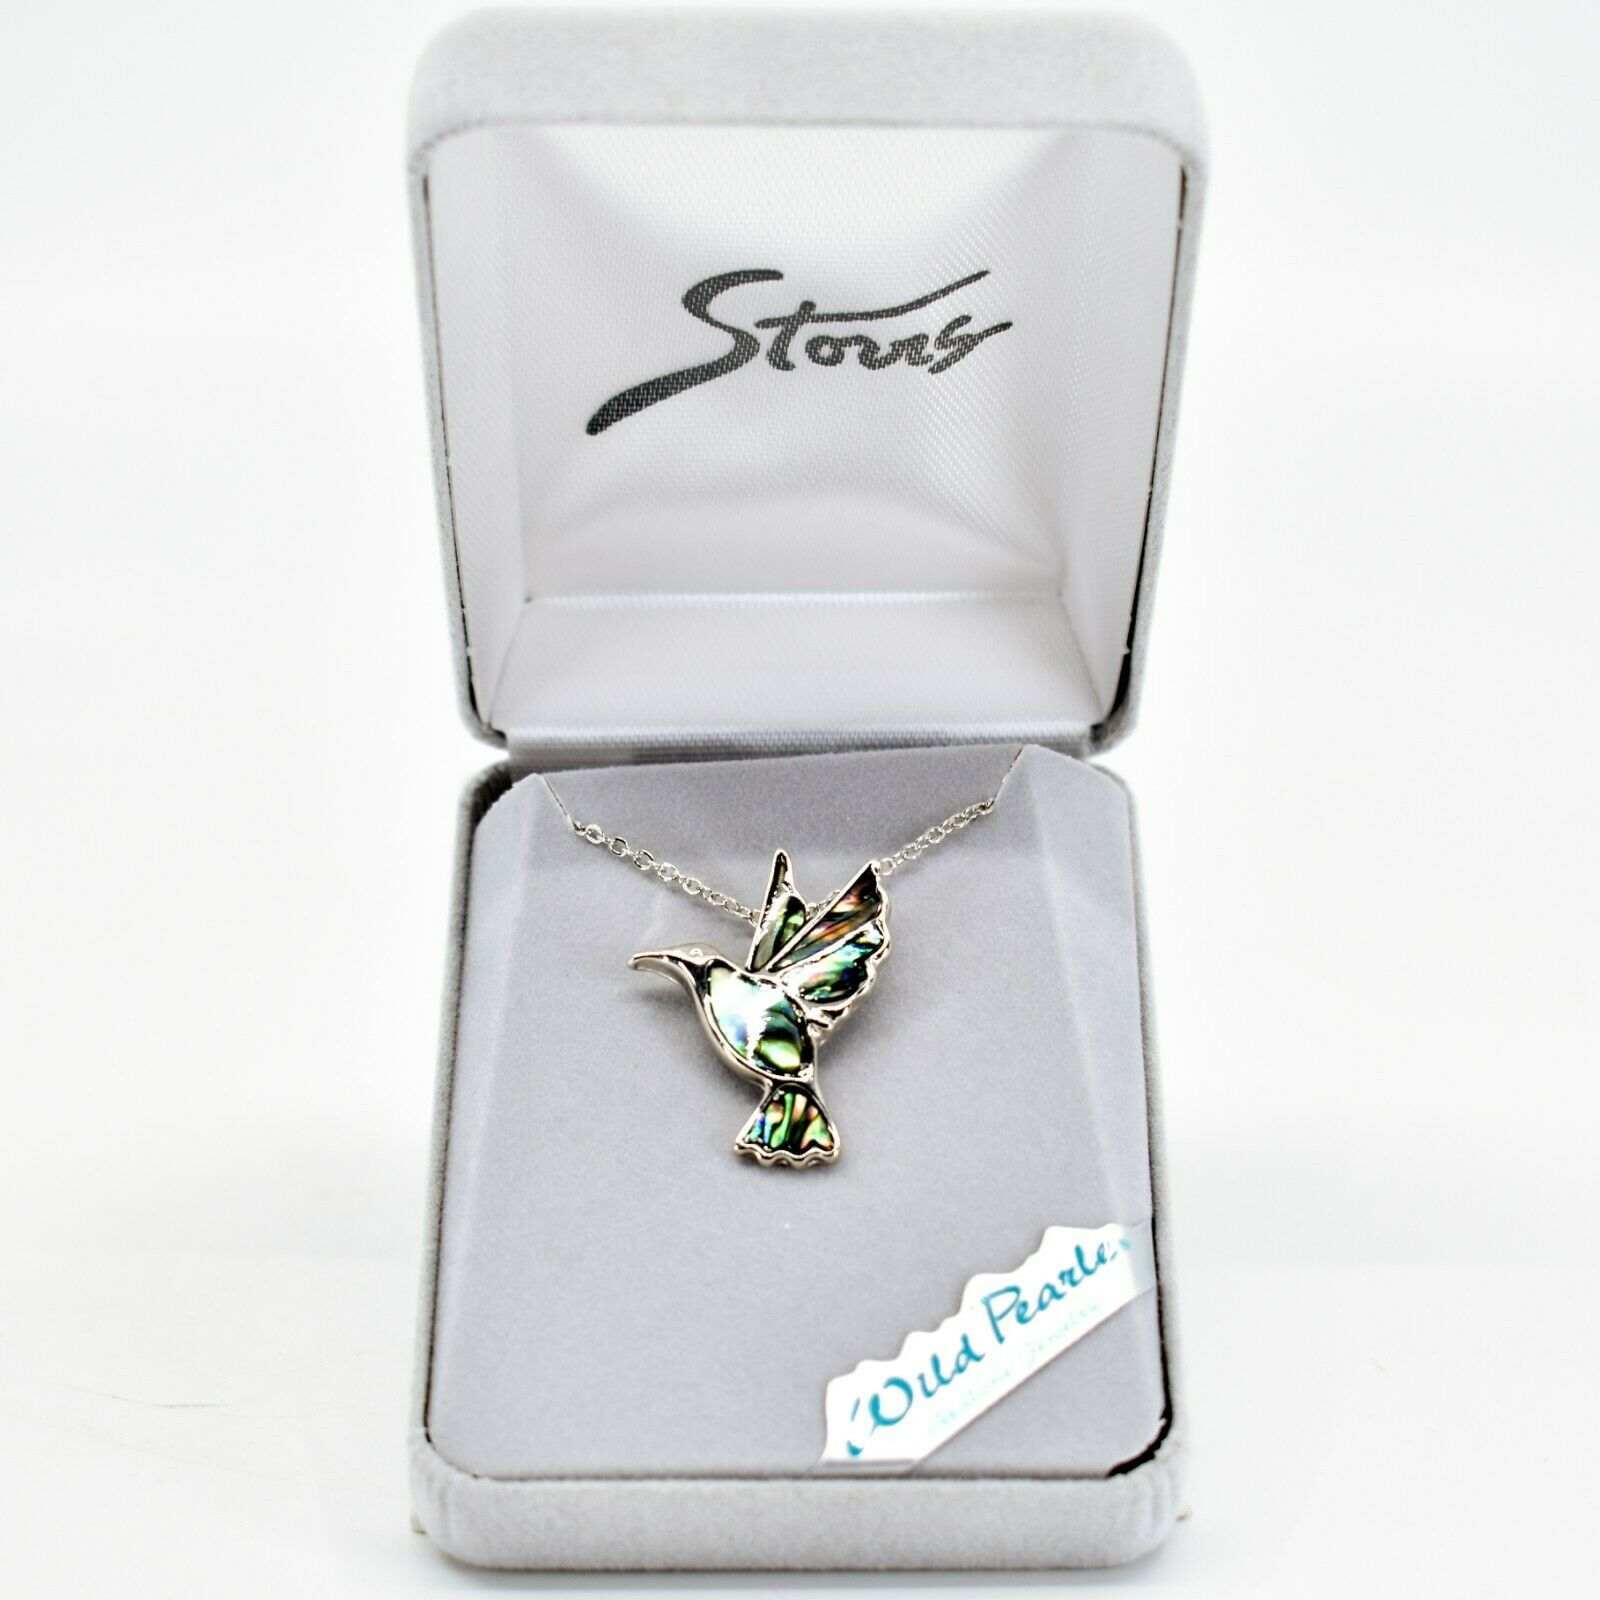 A.T. Storrs Wild Pearle Abalone Shell Hummingbird Pendant & Silver Tone Necklace